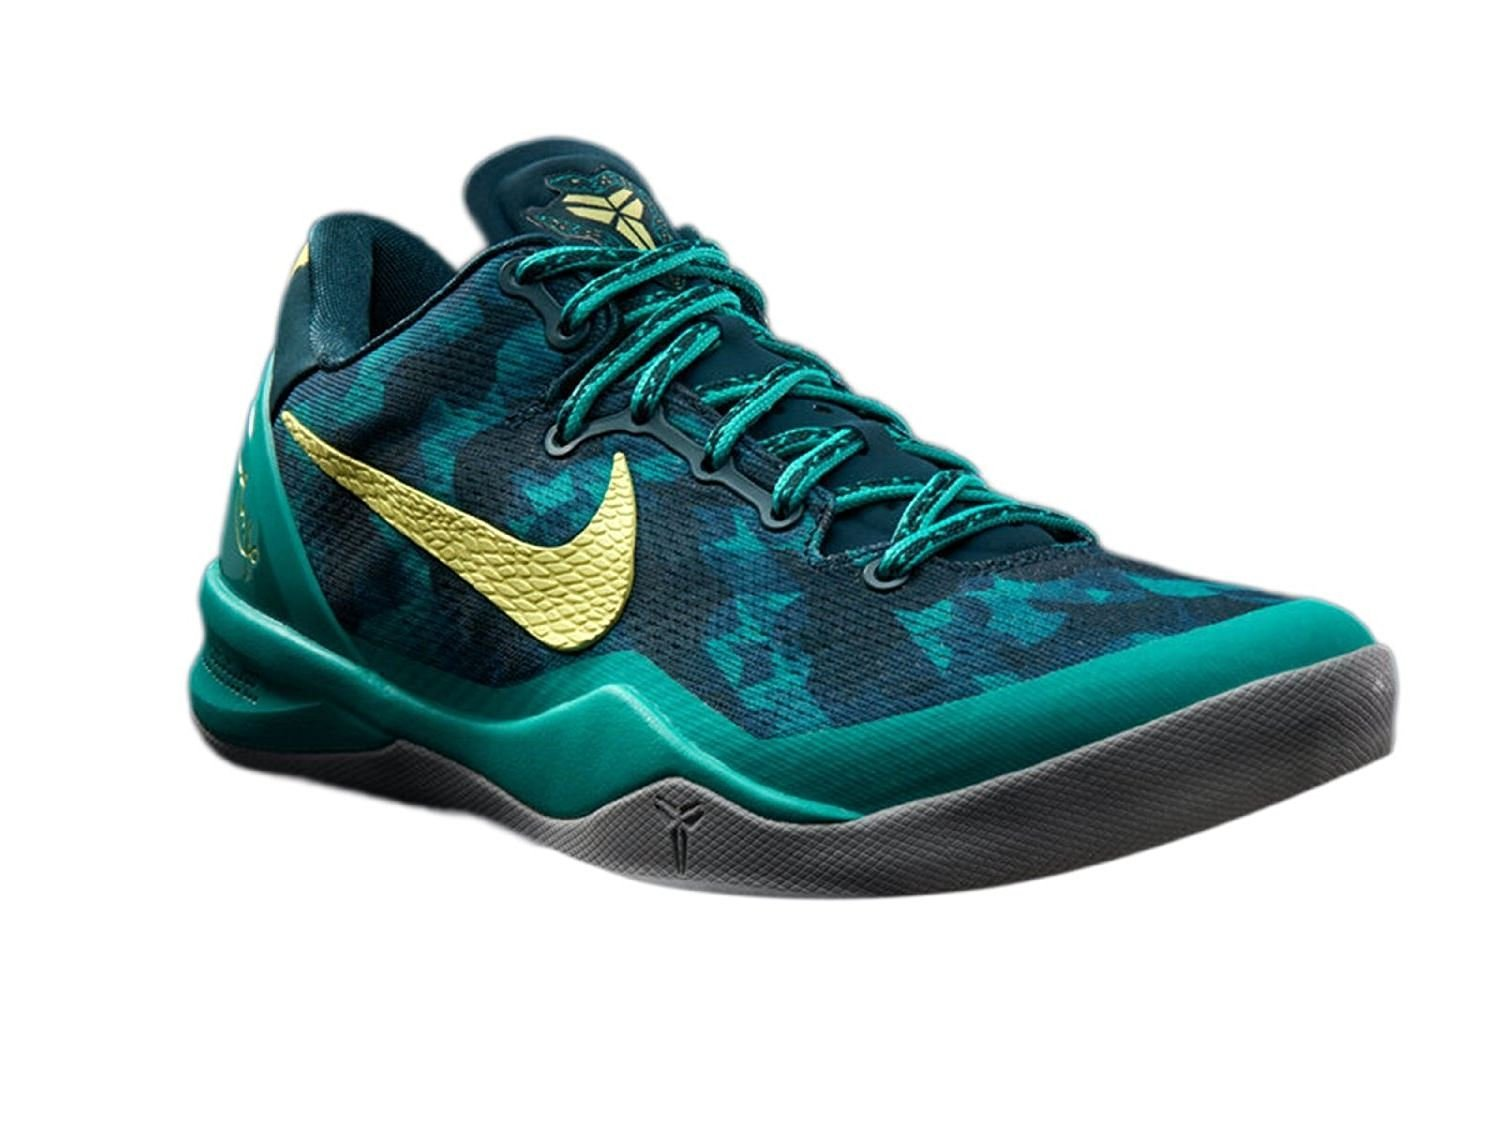 d98d2708203 Nike Men s Kobe 8 System+ Sport Pack Supernatural Edition Basketball Shoes  11 M US Teal Yellow